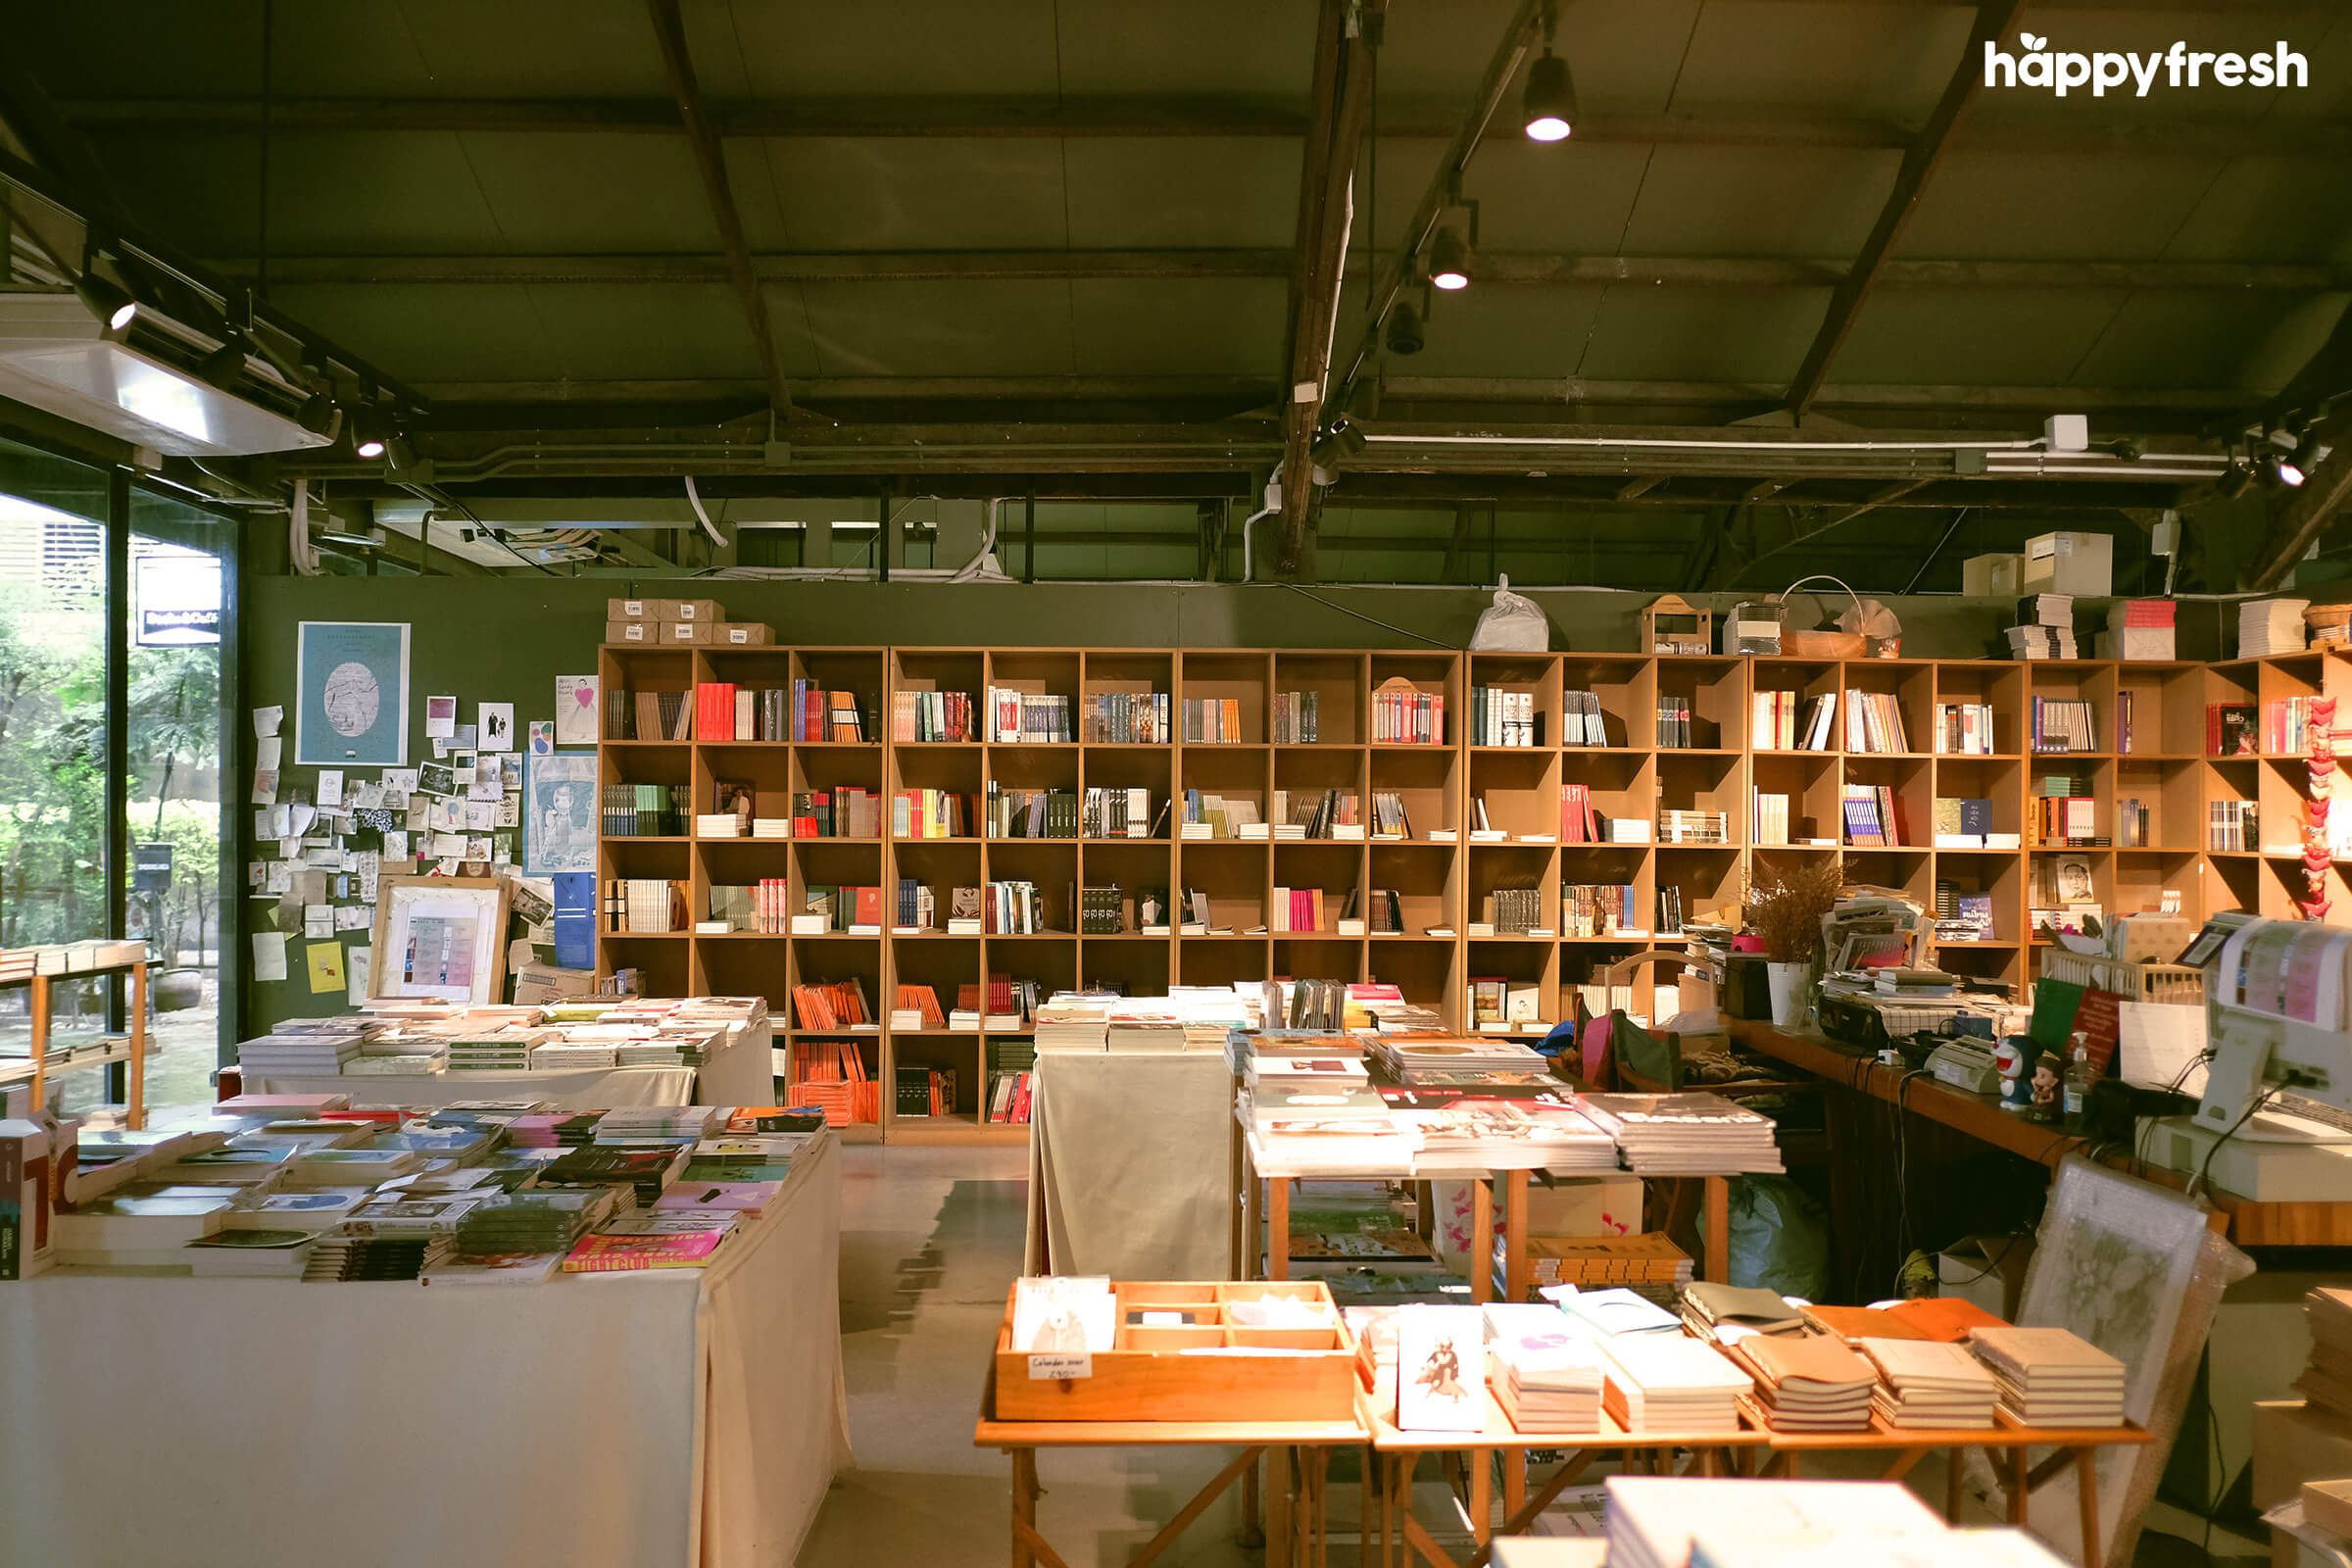 HappyFresh_Review_5_Cafes_Bookstores_In_Bangkok_Candide_Books